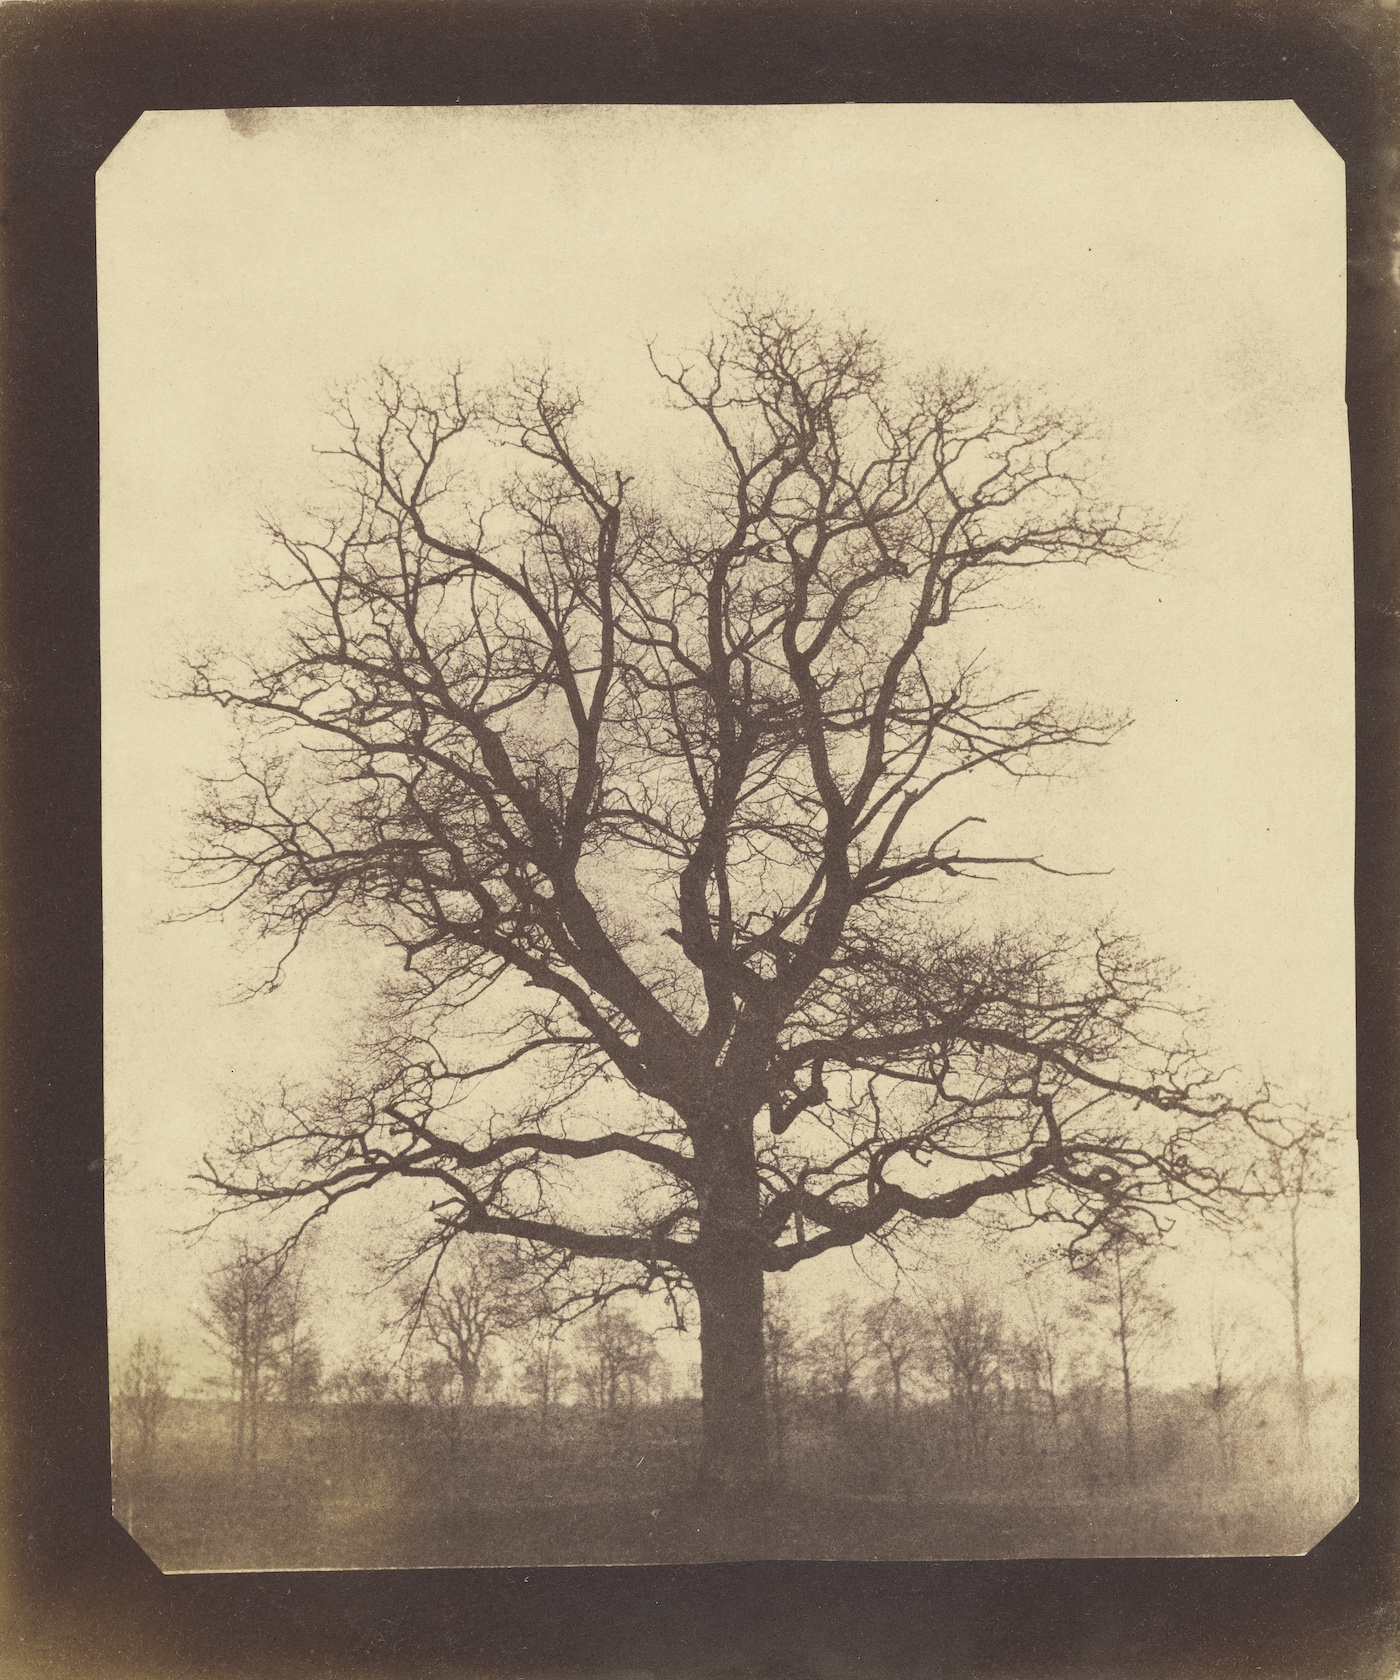 An Oak Tree in Winter; William Henry Fox Talbot (English, 1800 - 1877); probably 1842 - 1843; Salted paper print; 19.4 x 16.6 cm (7 5/8 x 6 9/16 in.); 84.XM.893.1